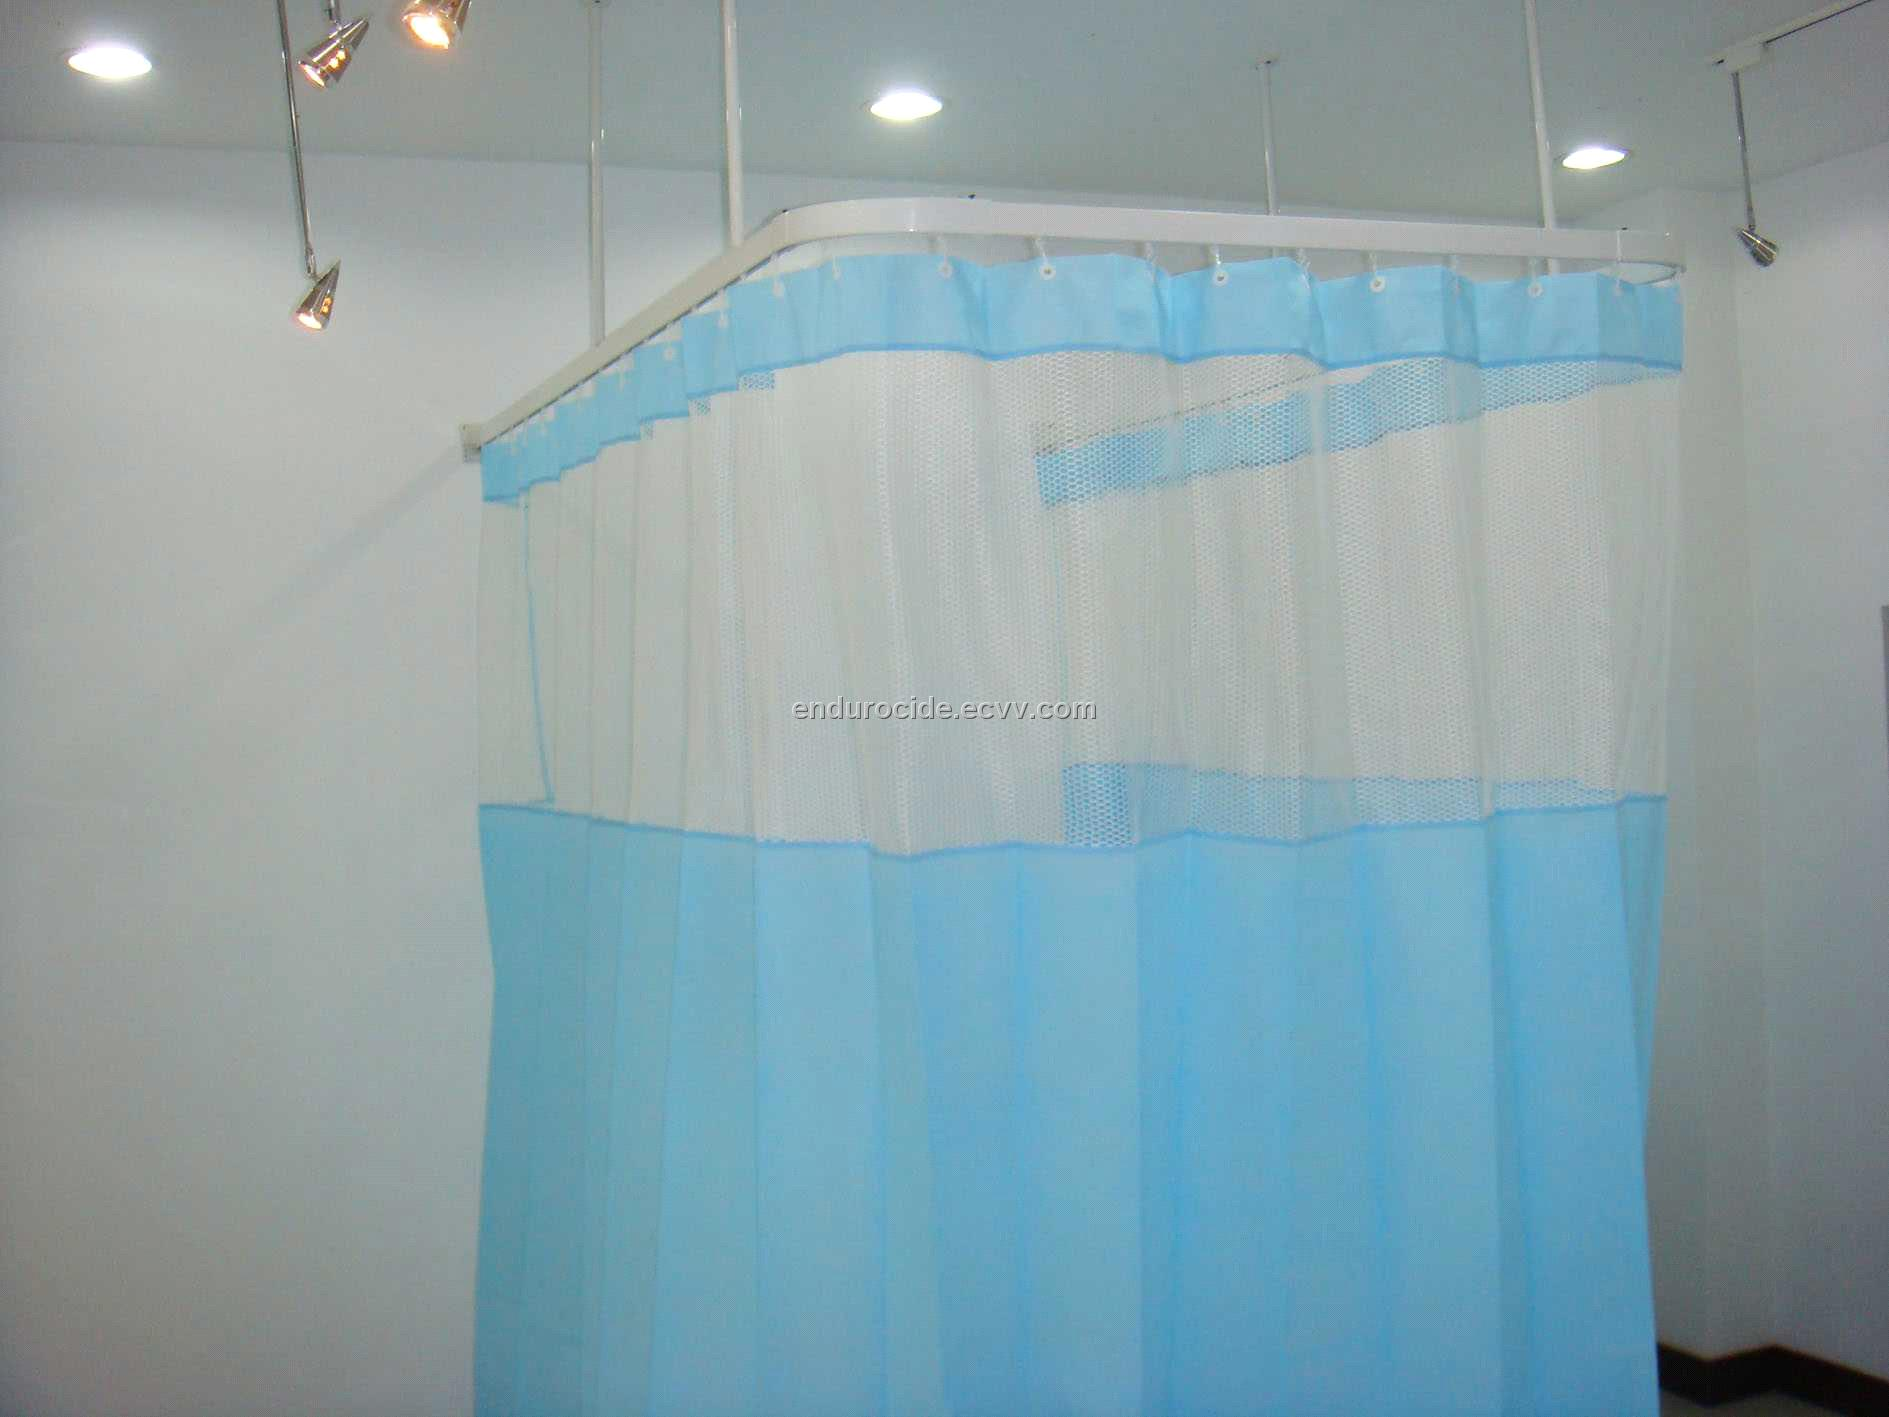 nhs photos stock images bed photo alamy surround image curtain a hospital blue curtains